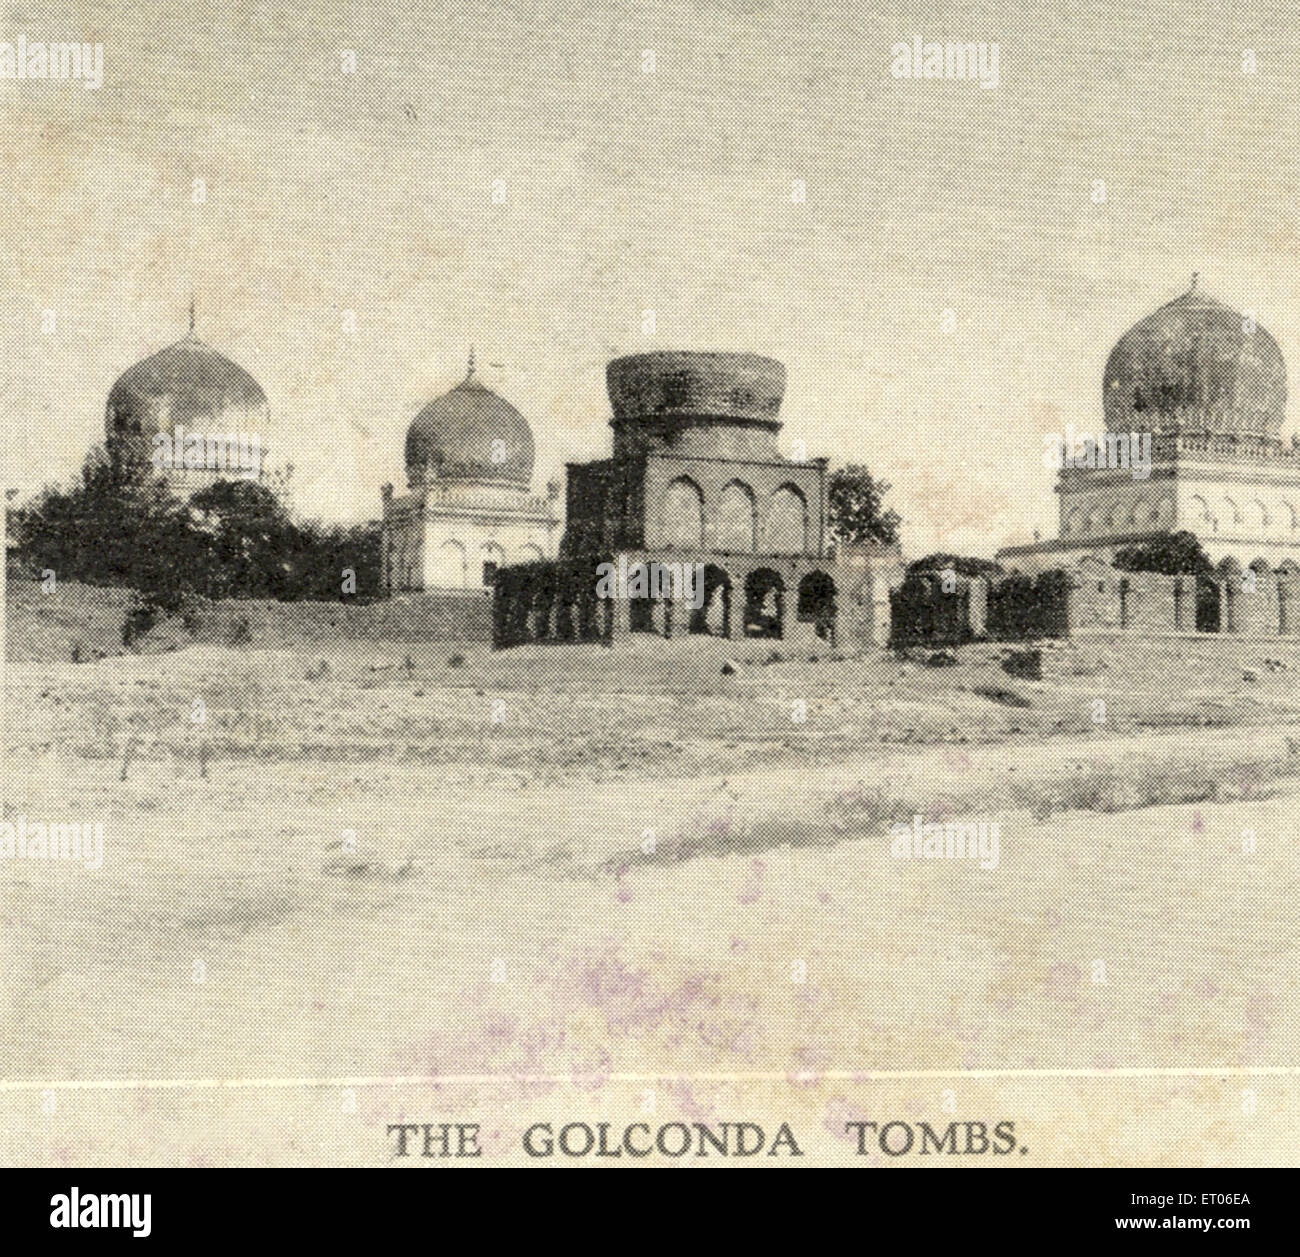 The Golconda tombs ; 10th February 1906 ; Hyderabad ; Andhra Pradesh ; India - Stock Image